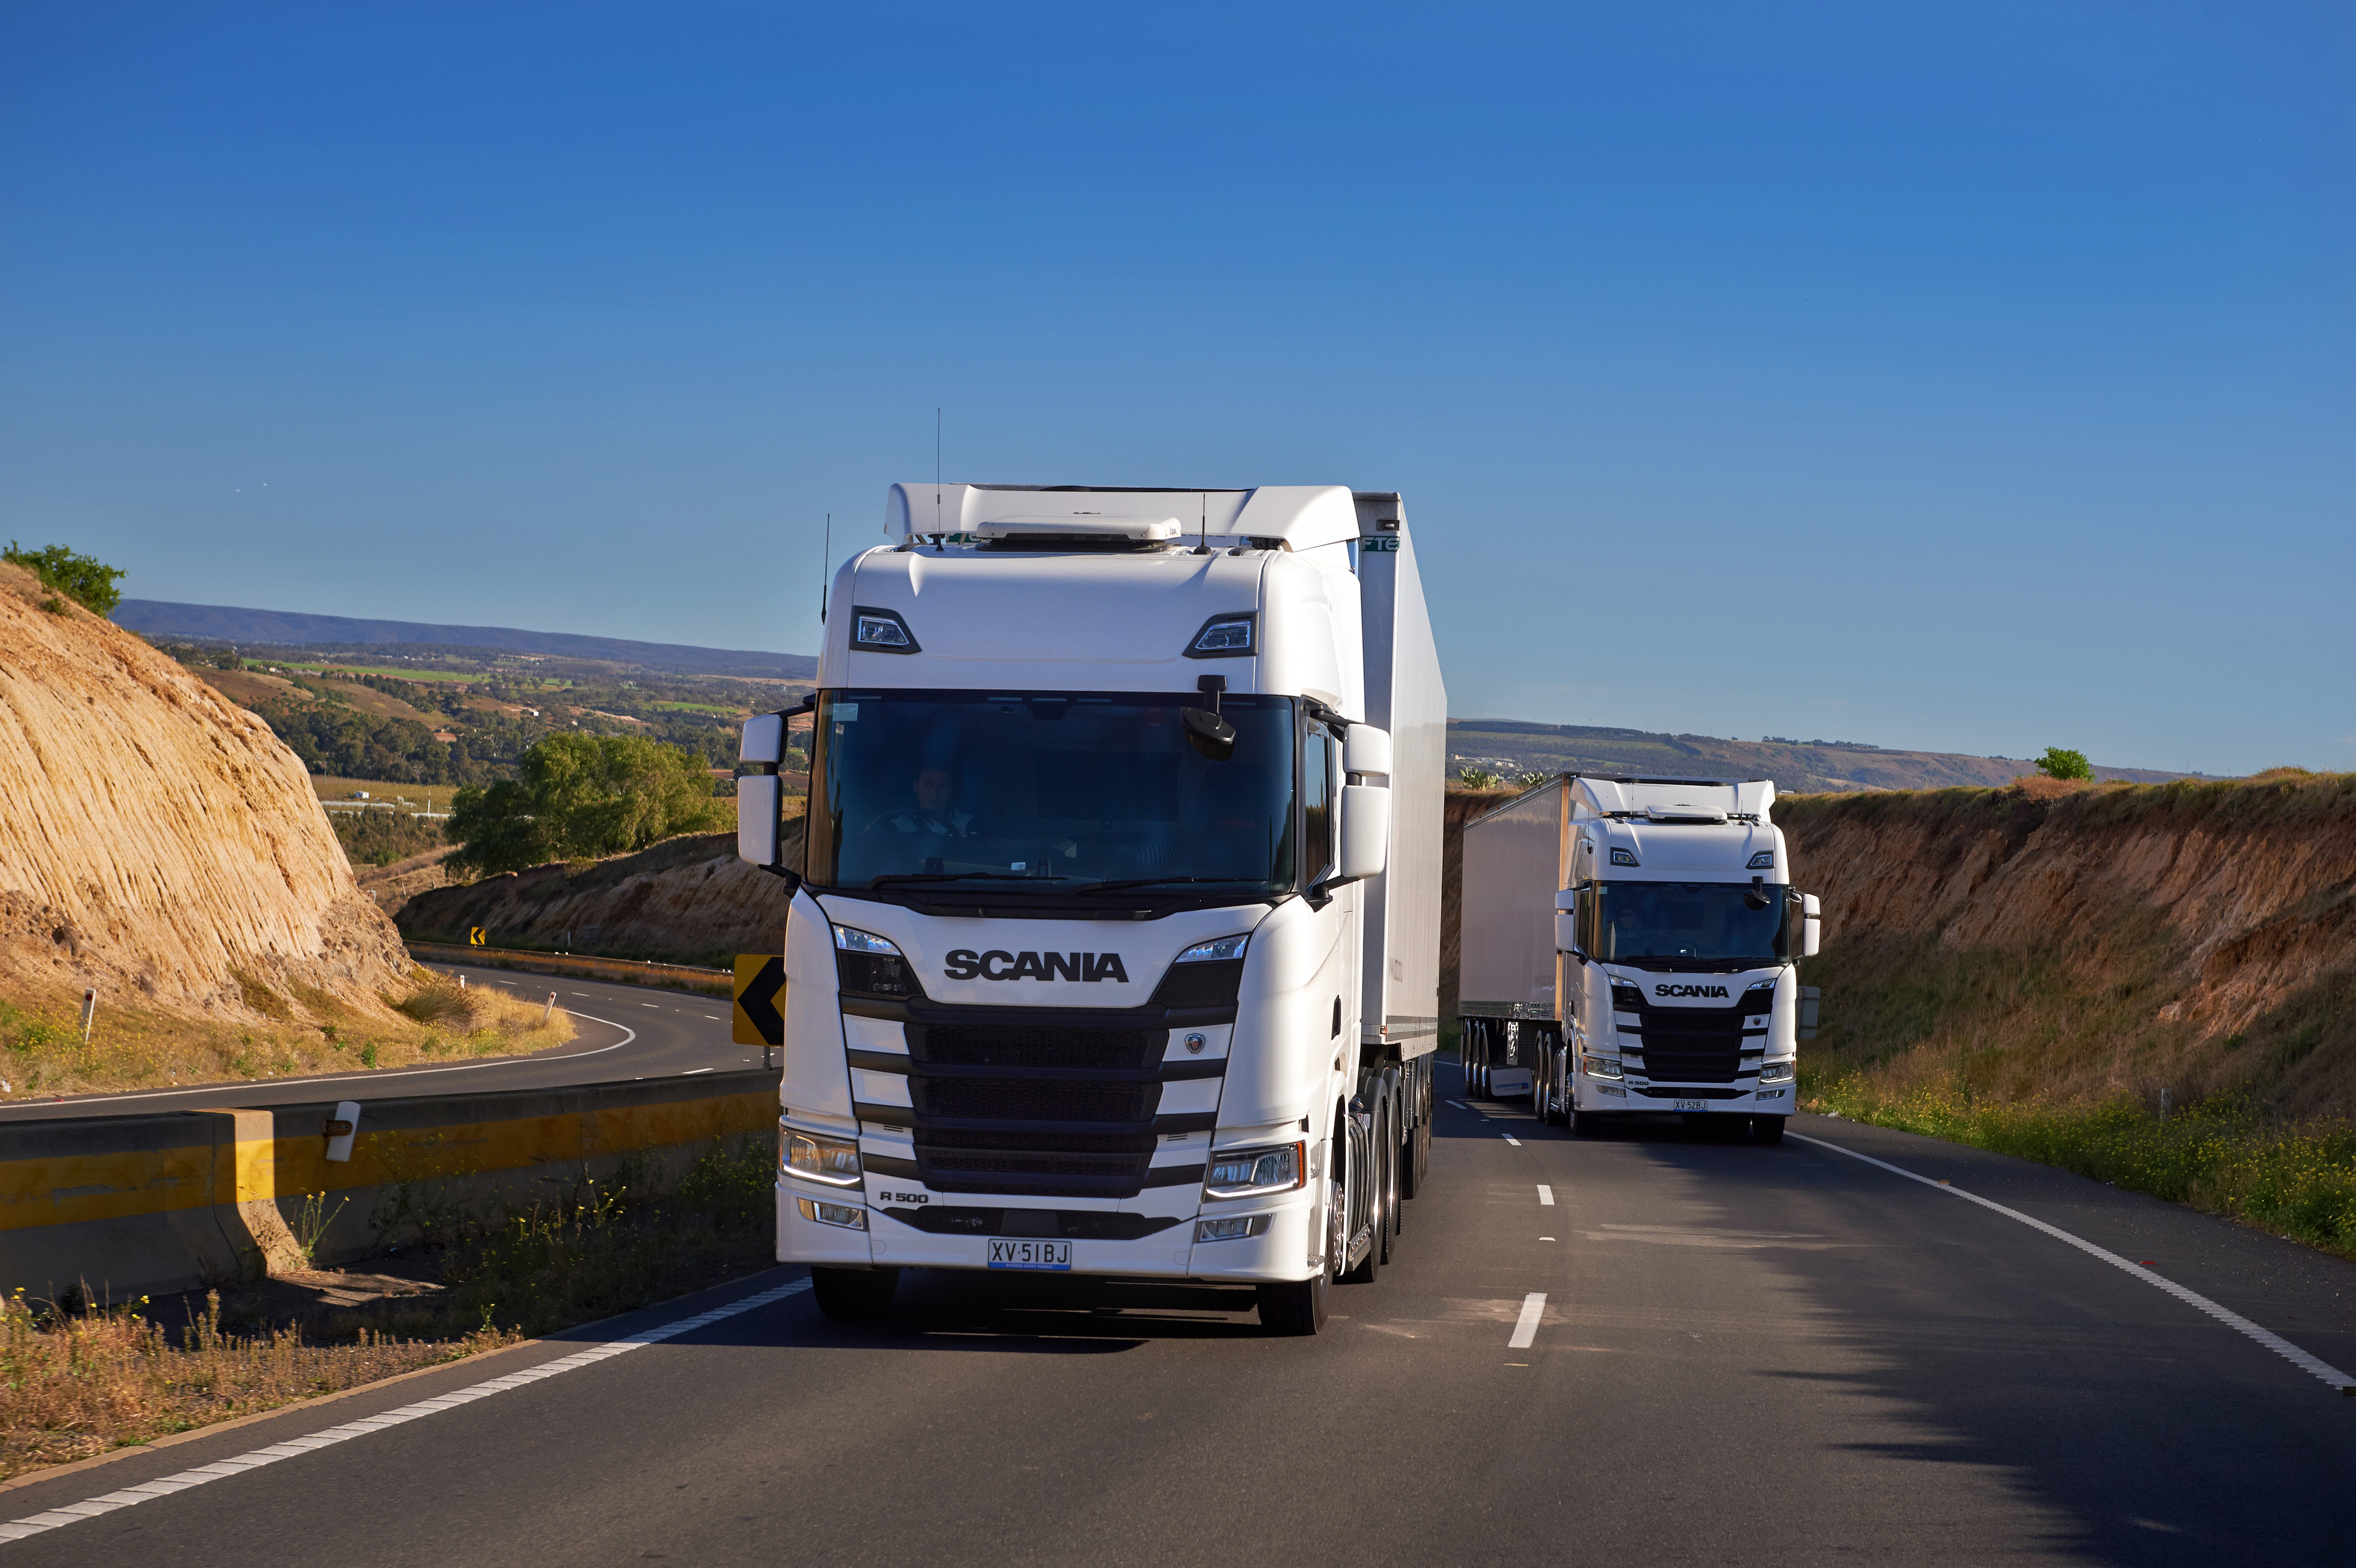 Scania reaches new highs in truck deliveries in 2019